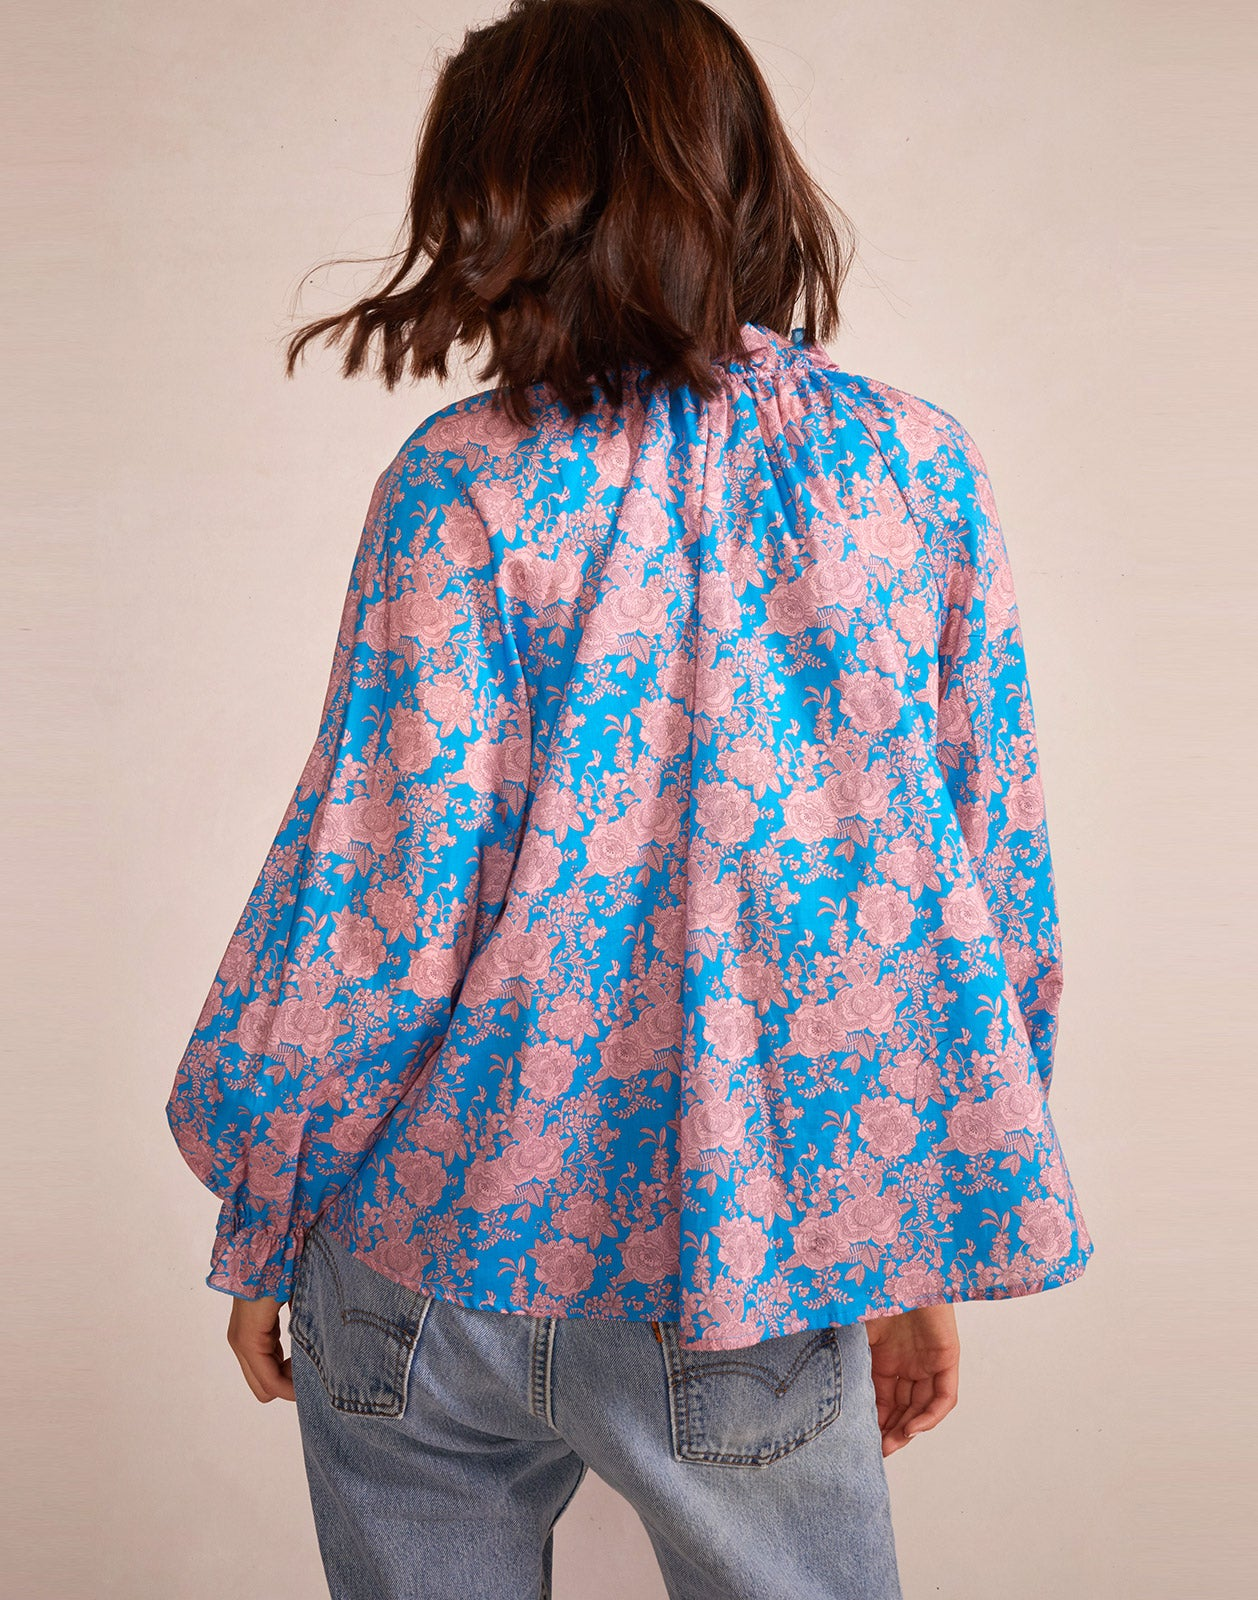 Alternate back view model wearing Floral Cotton Waterfall Top